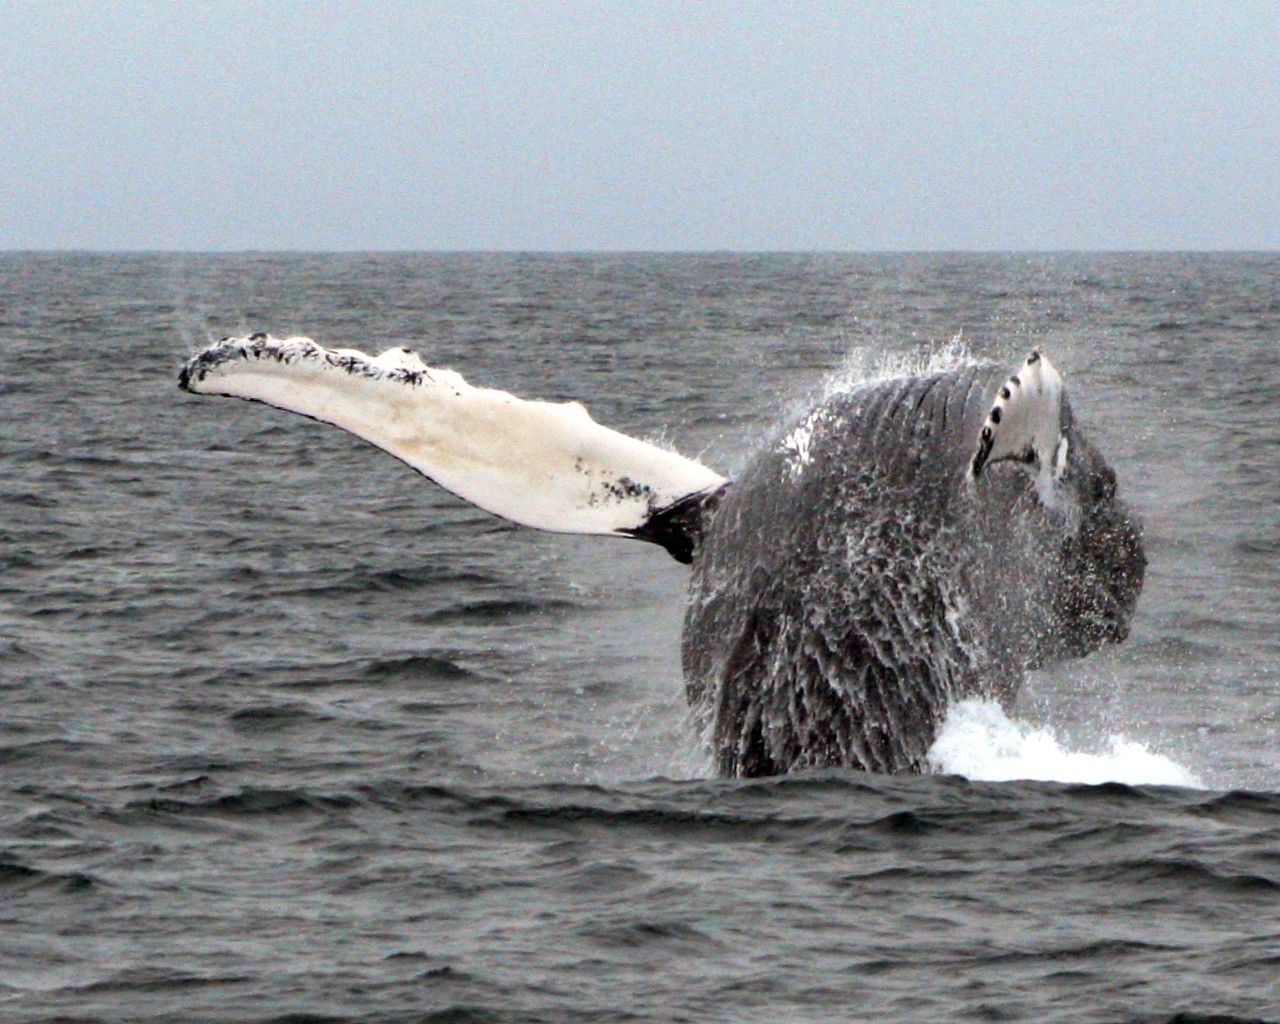 Whale at Cape Cod